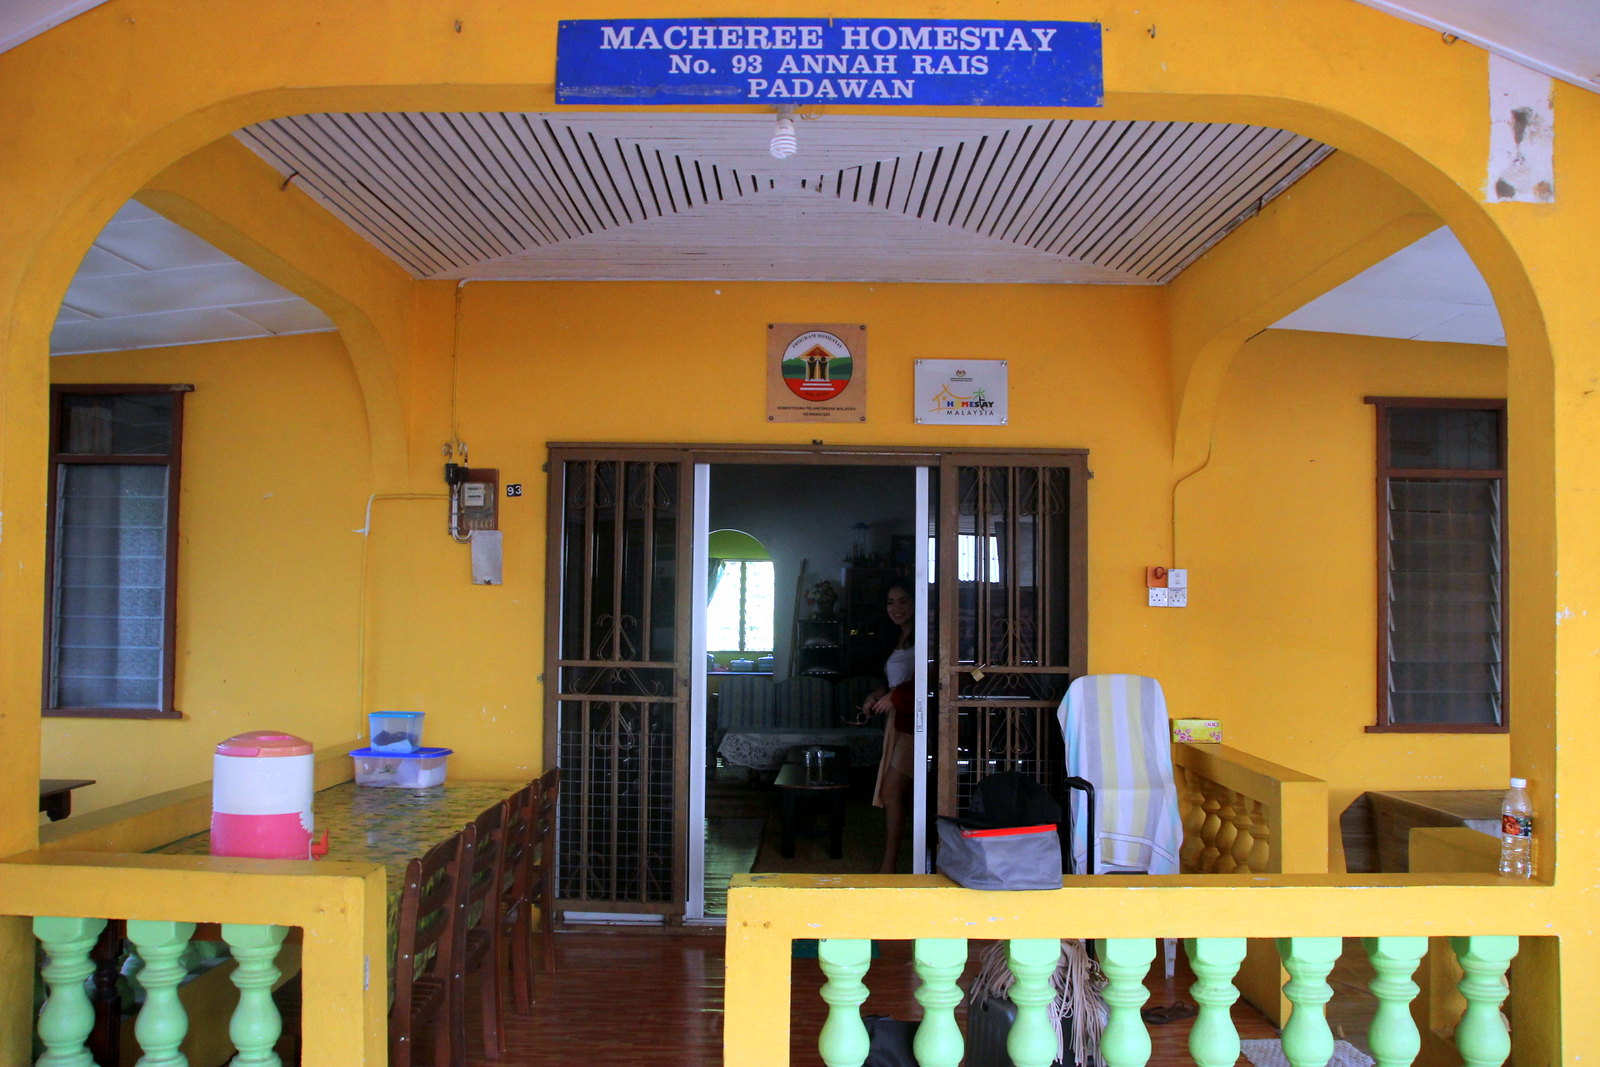 Macheree Homestay Anna Rais